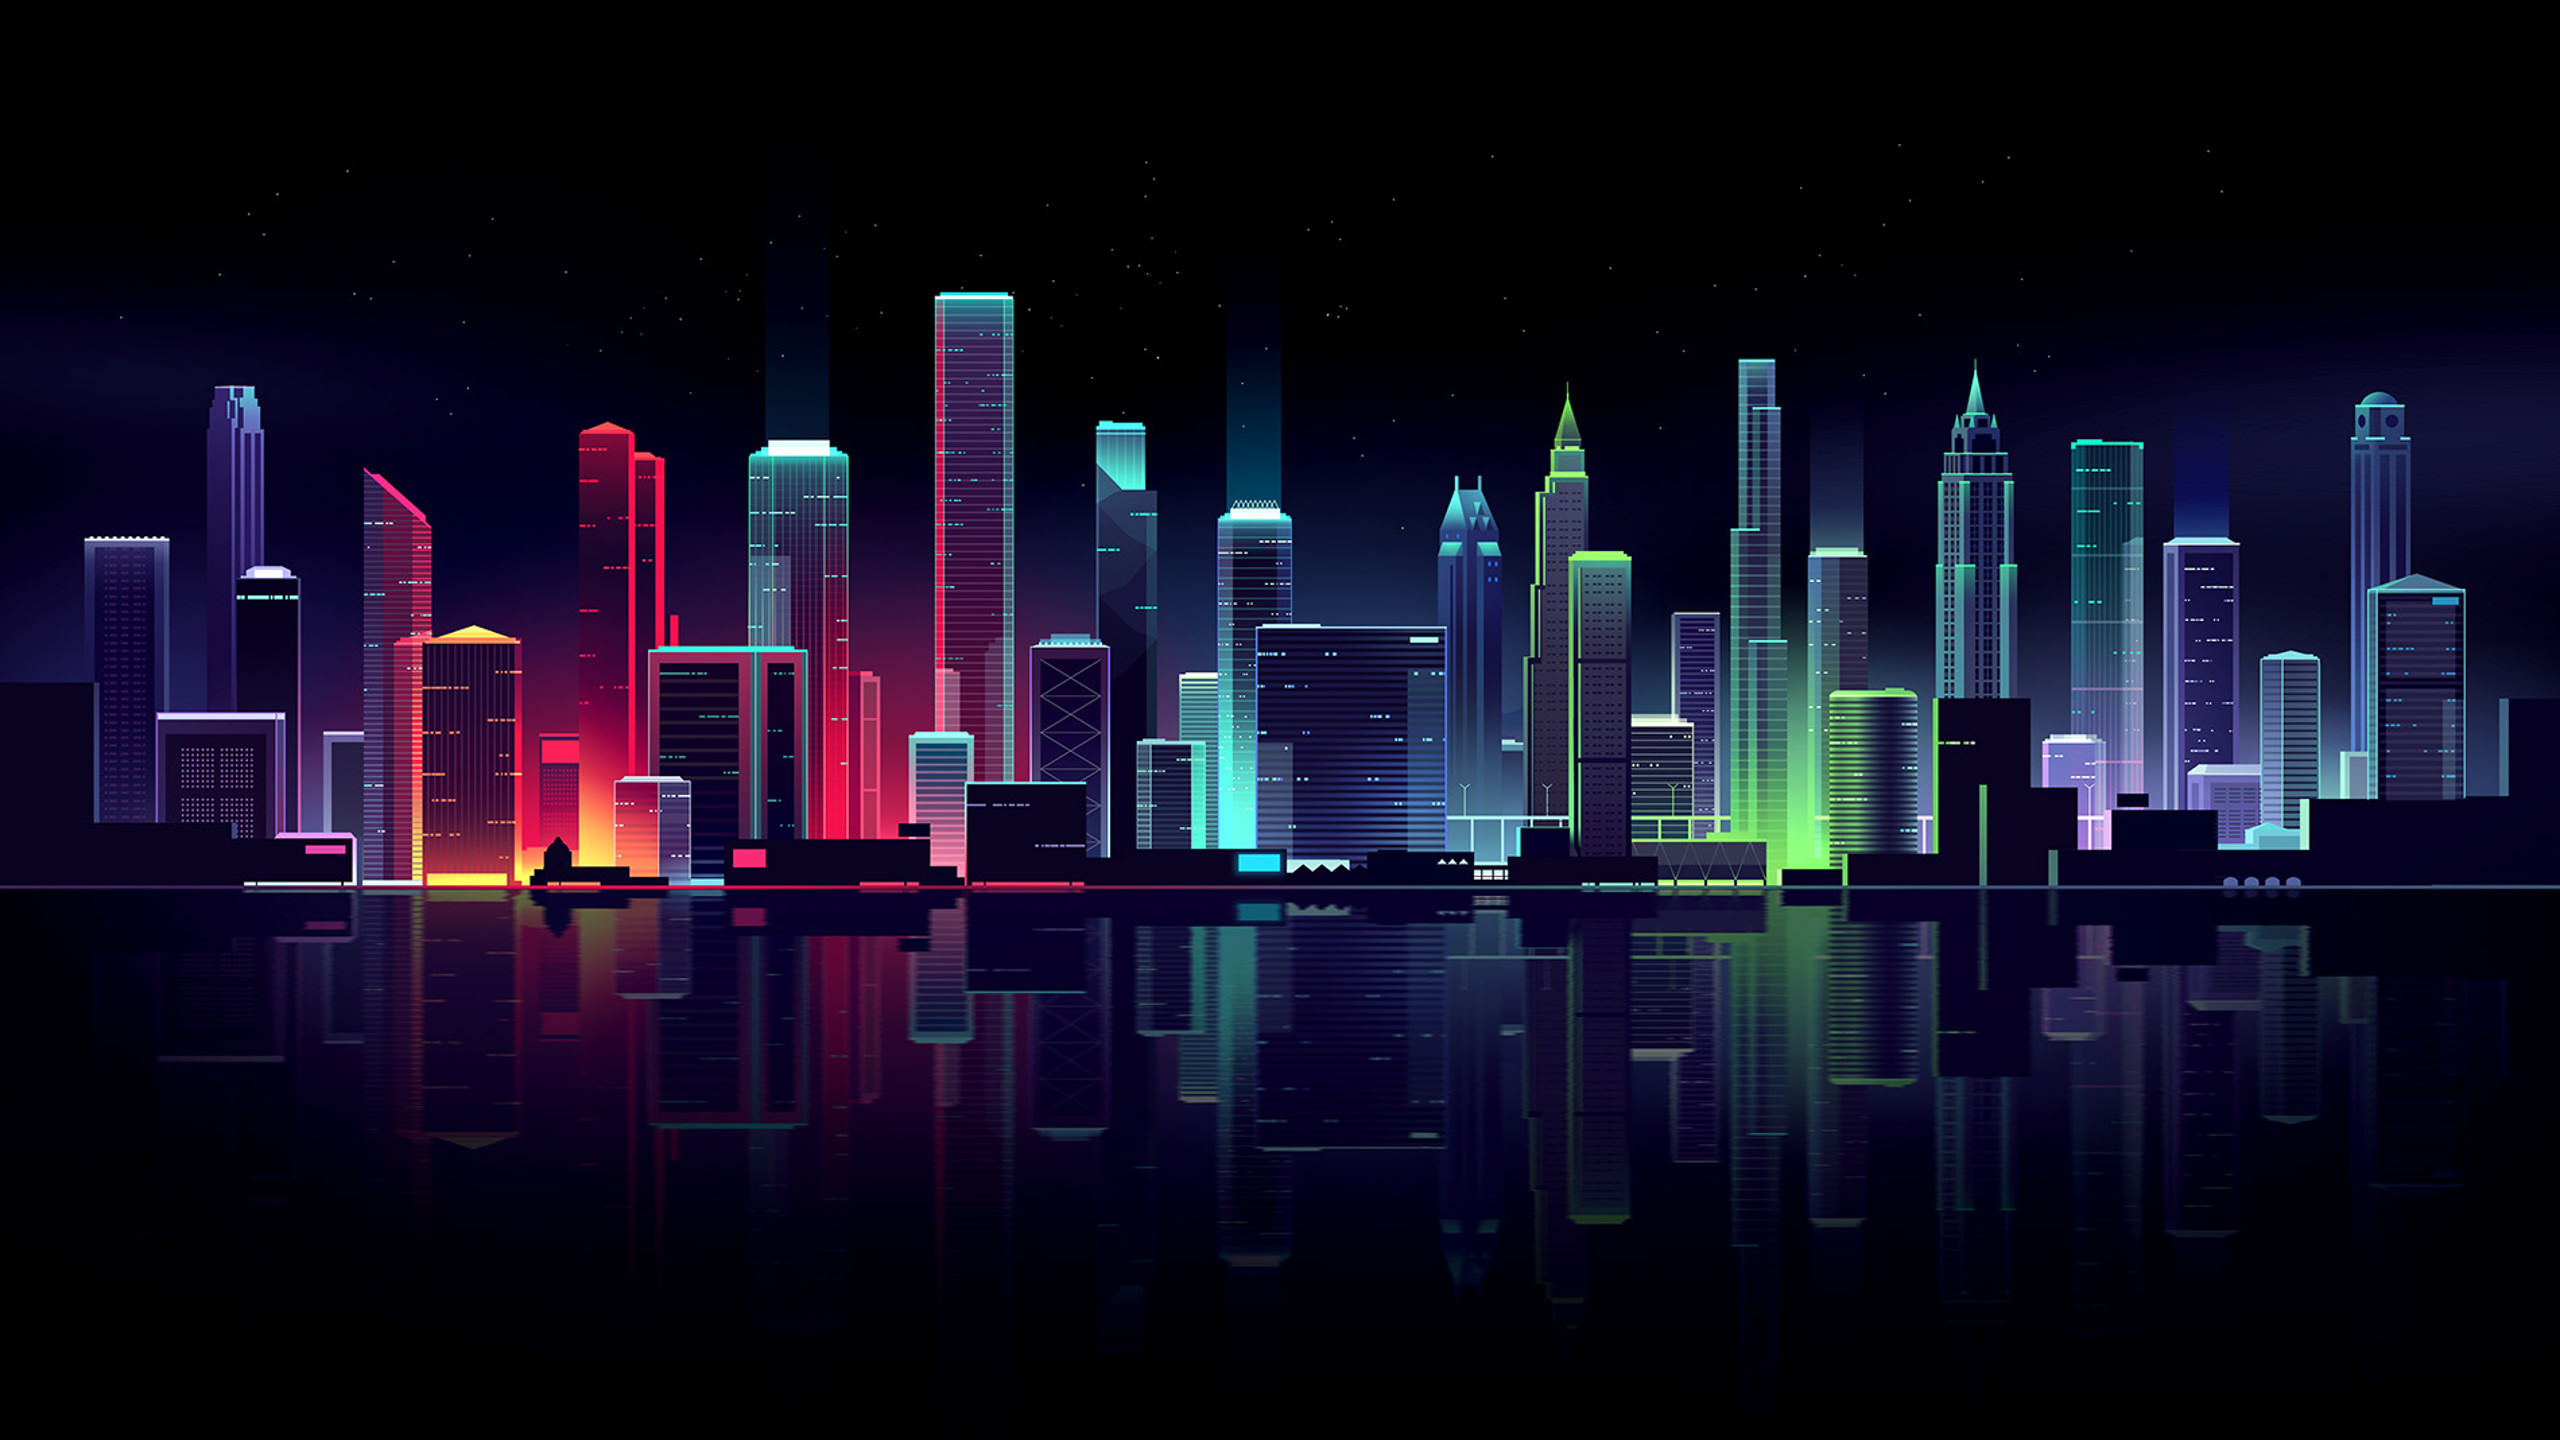 Neon City Illustration By Romain Trystram 2560x1440